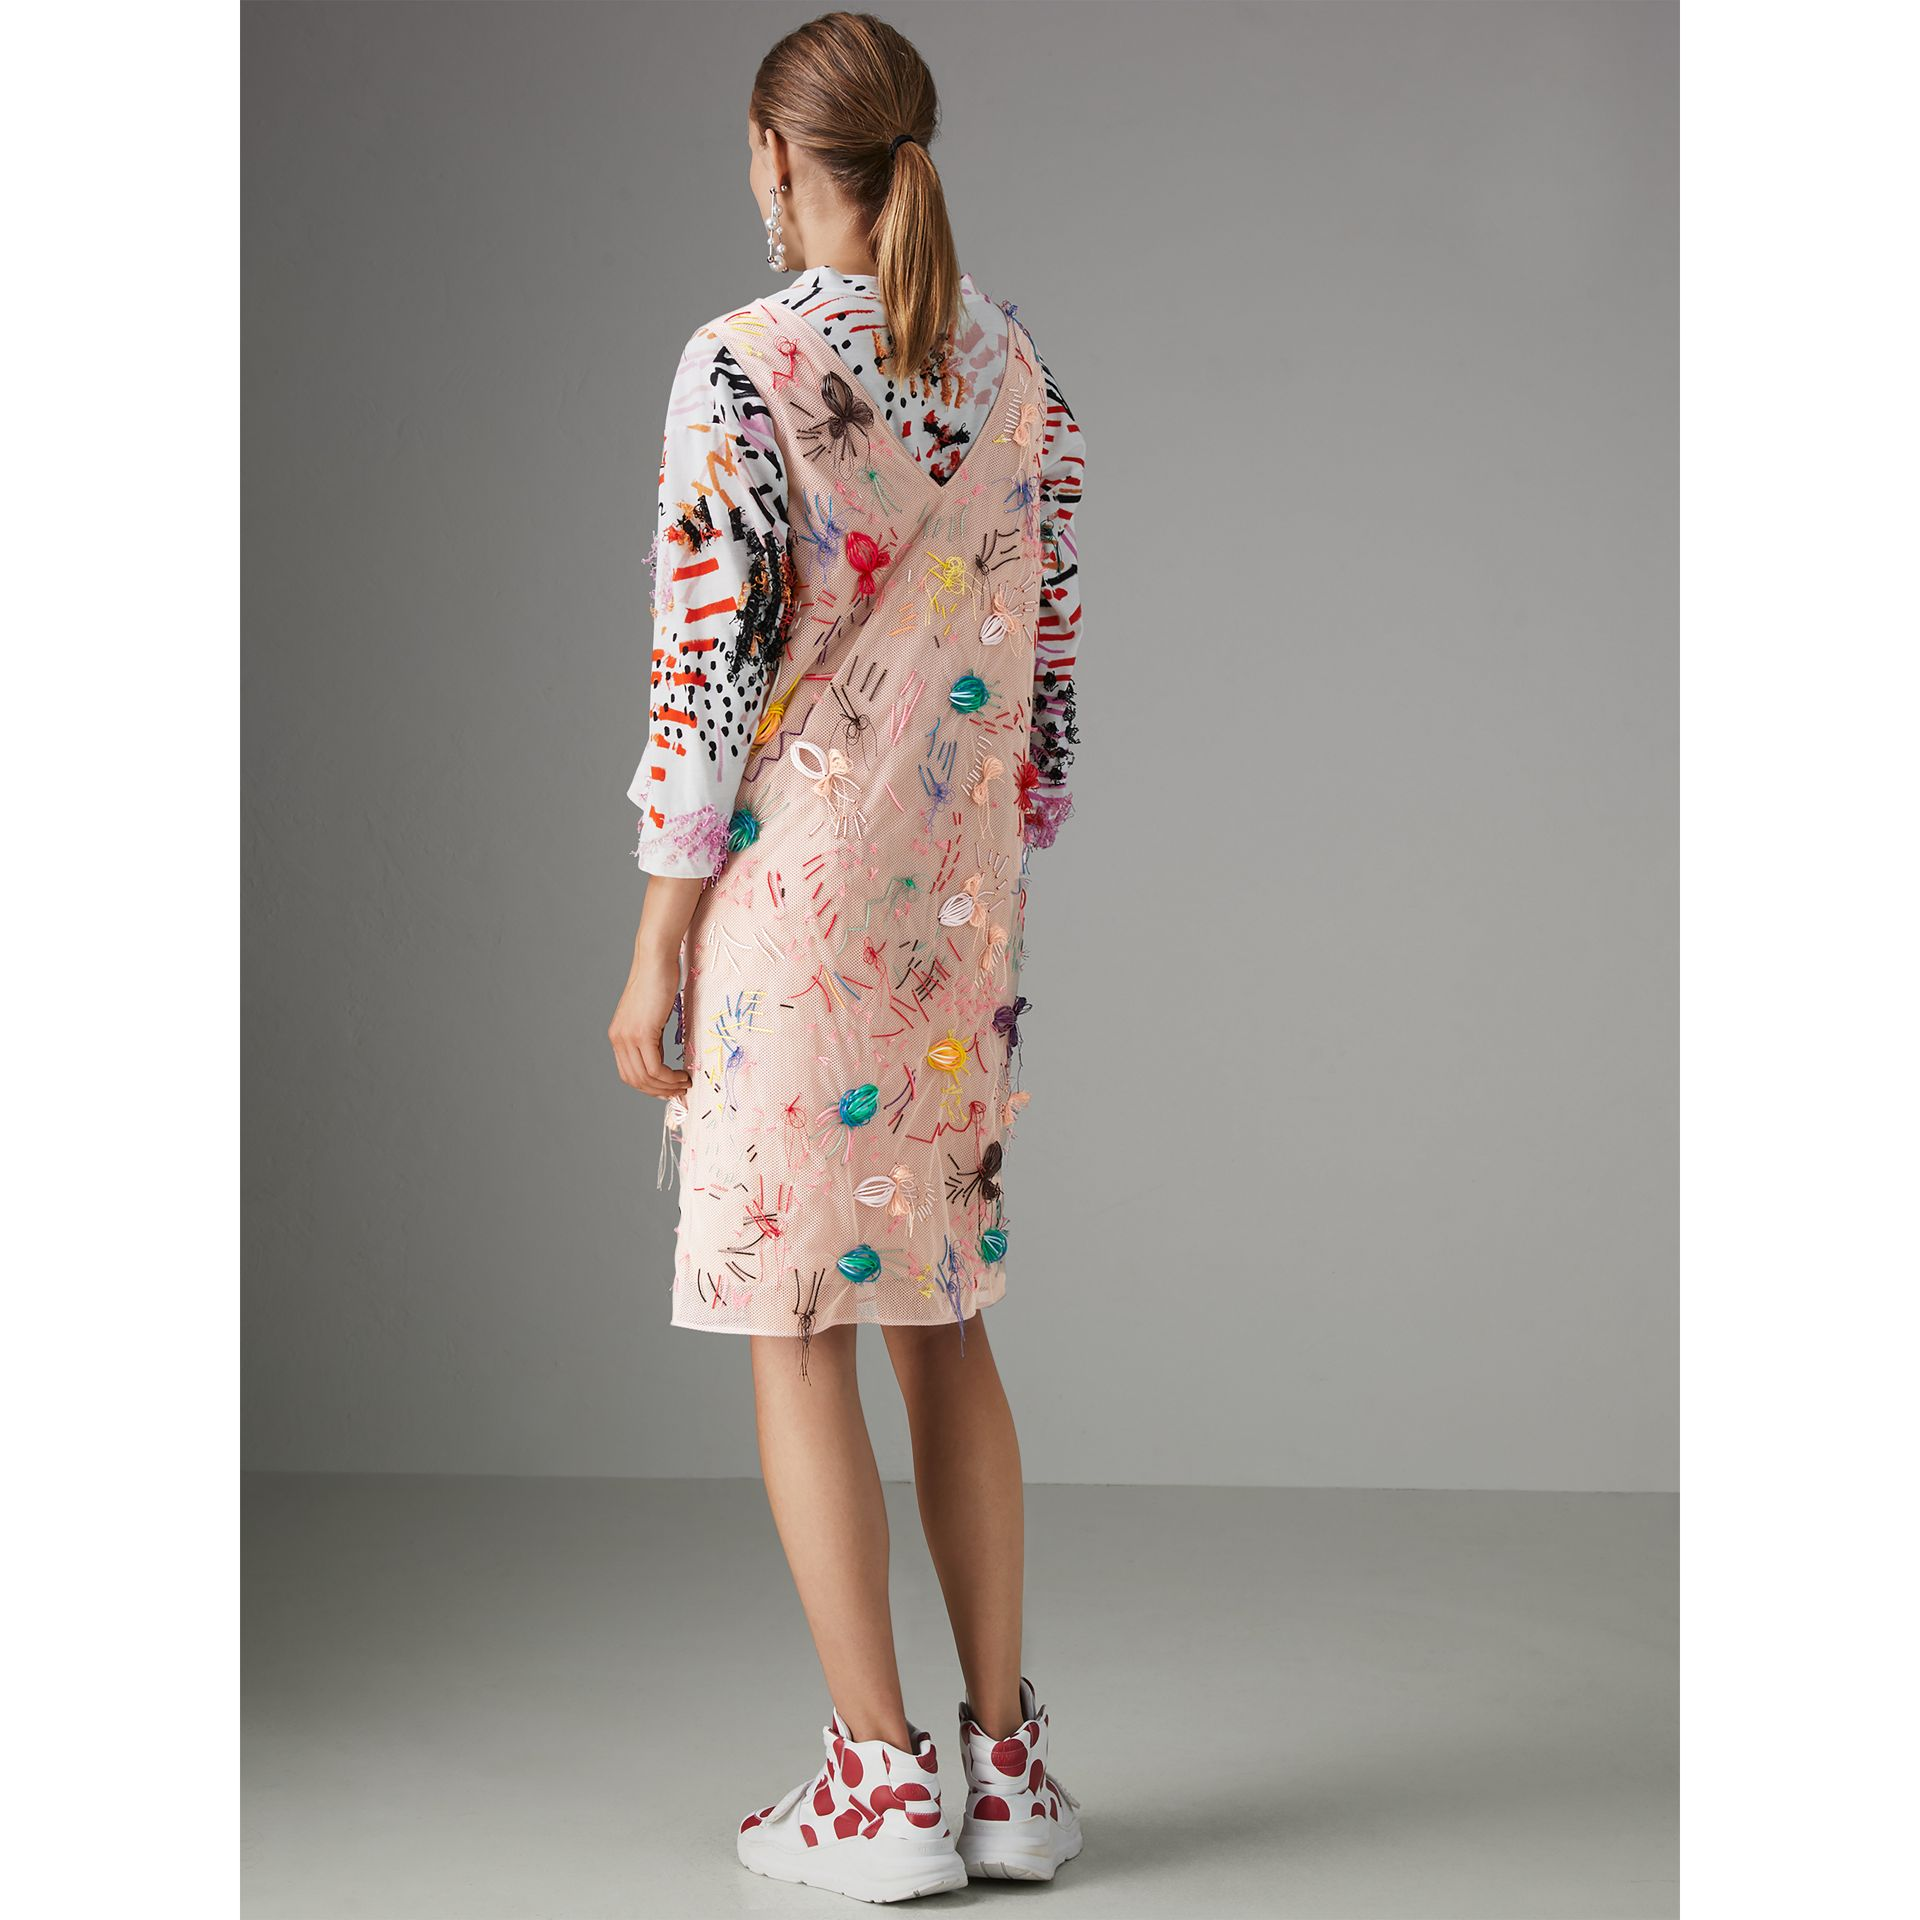 Embellished Sleeveless Dress in Pink - Women | Burberry - gallery image 2